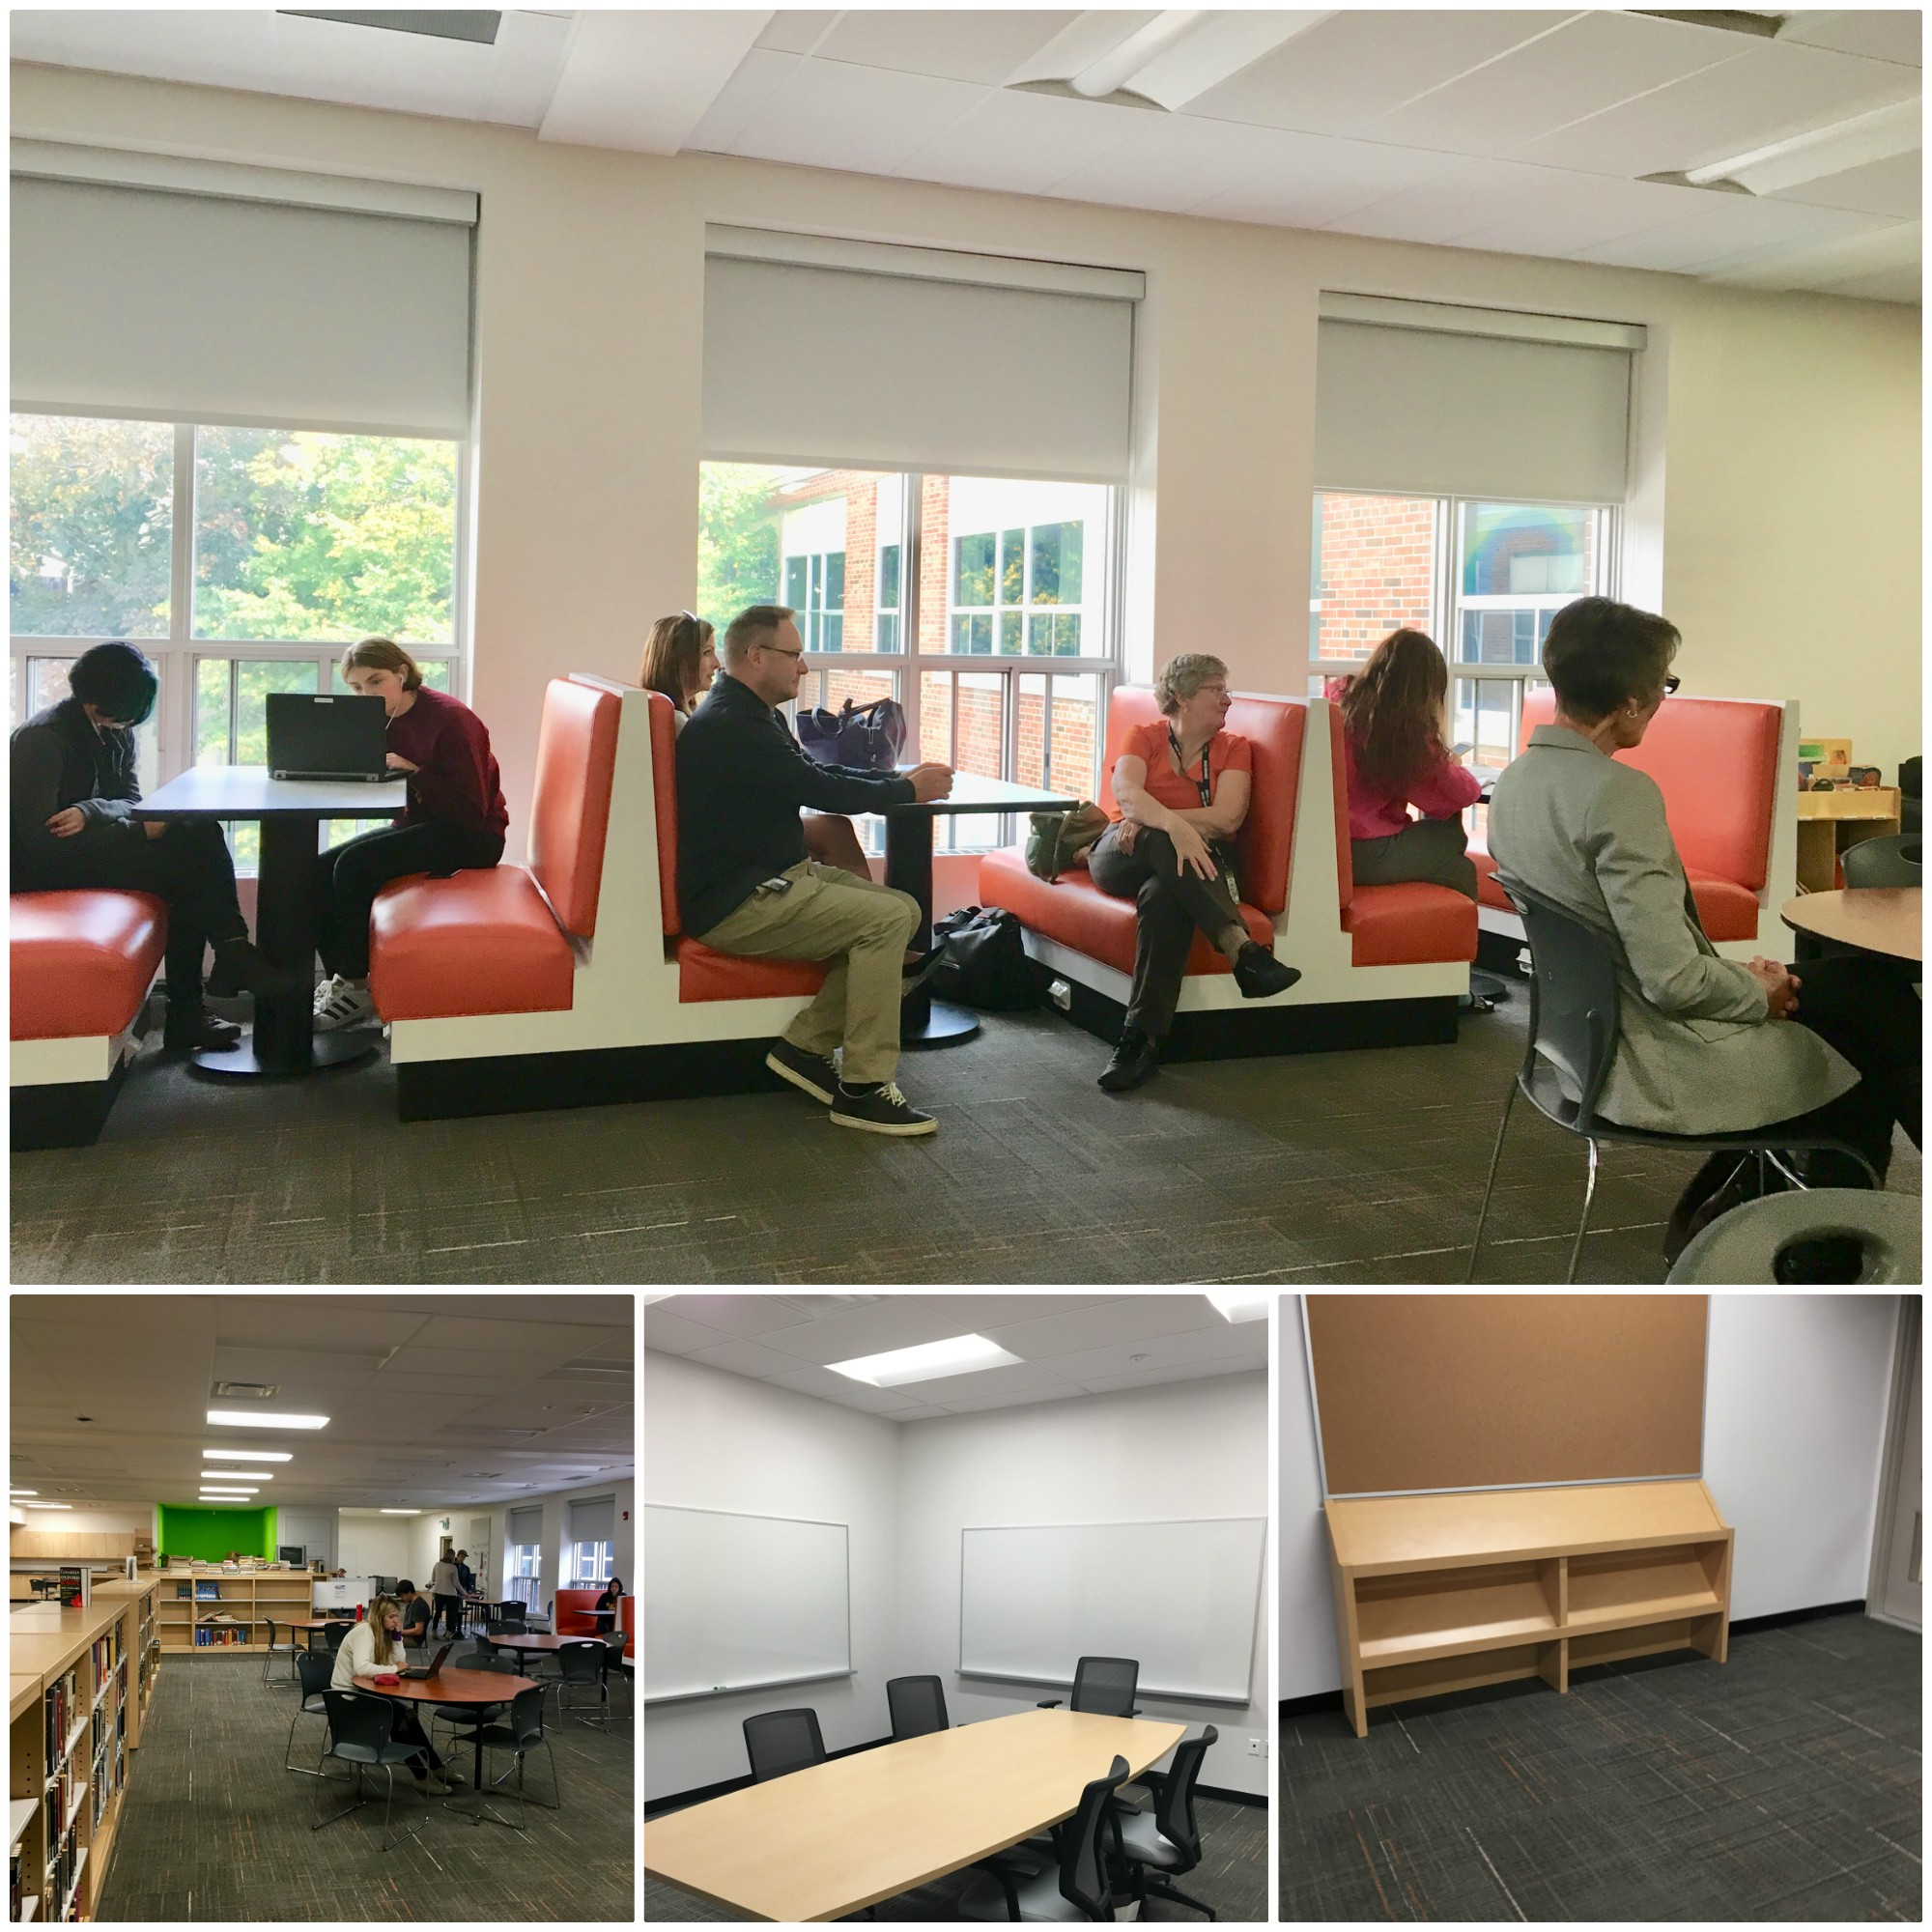 Collage of four photos of the Waterford District High School learning commons